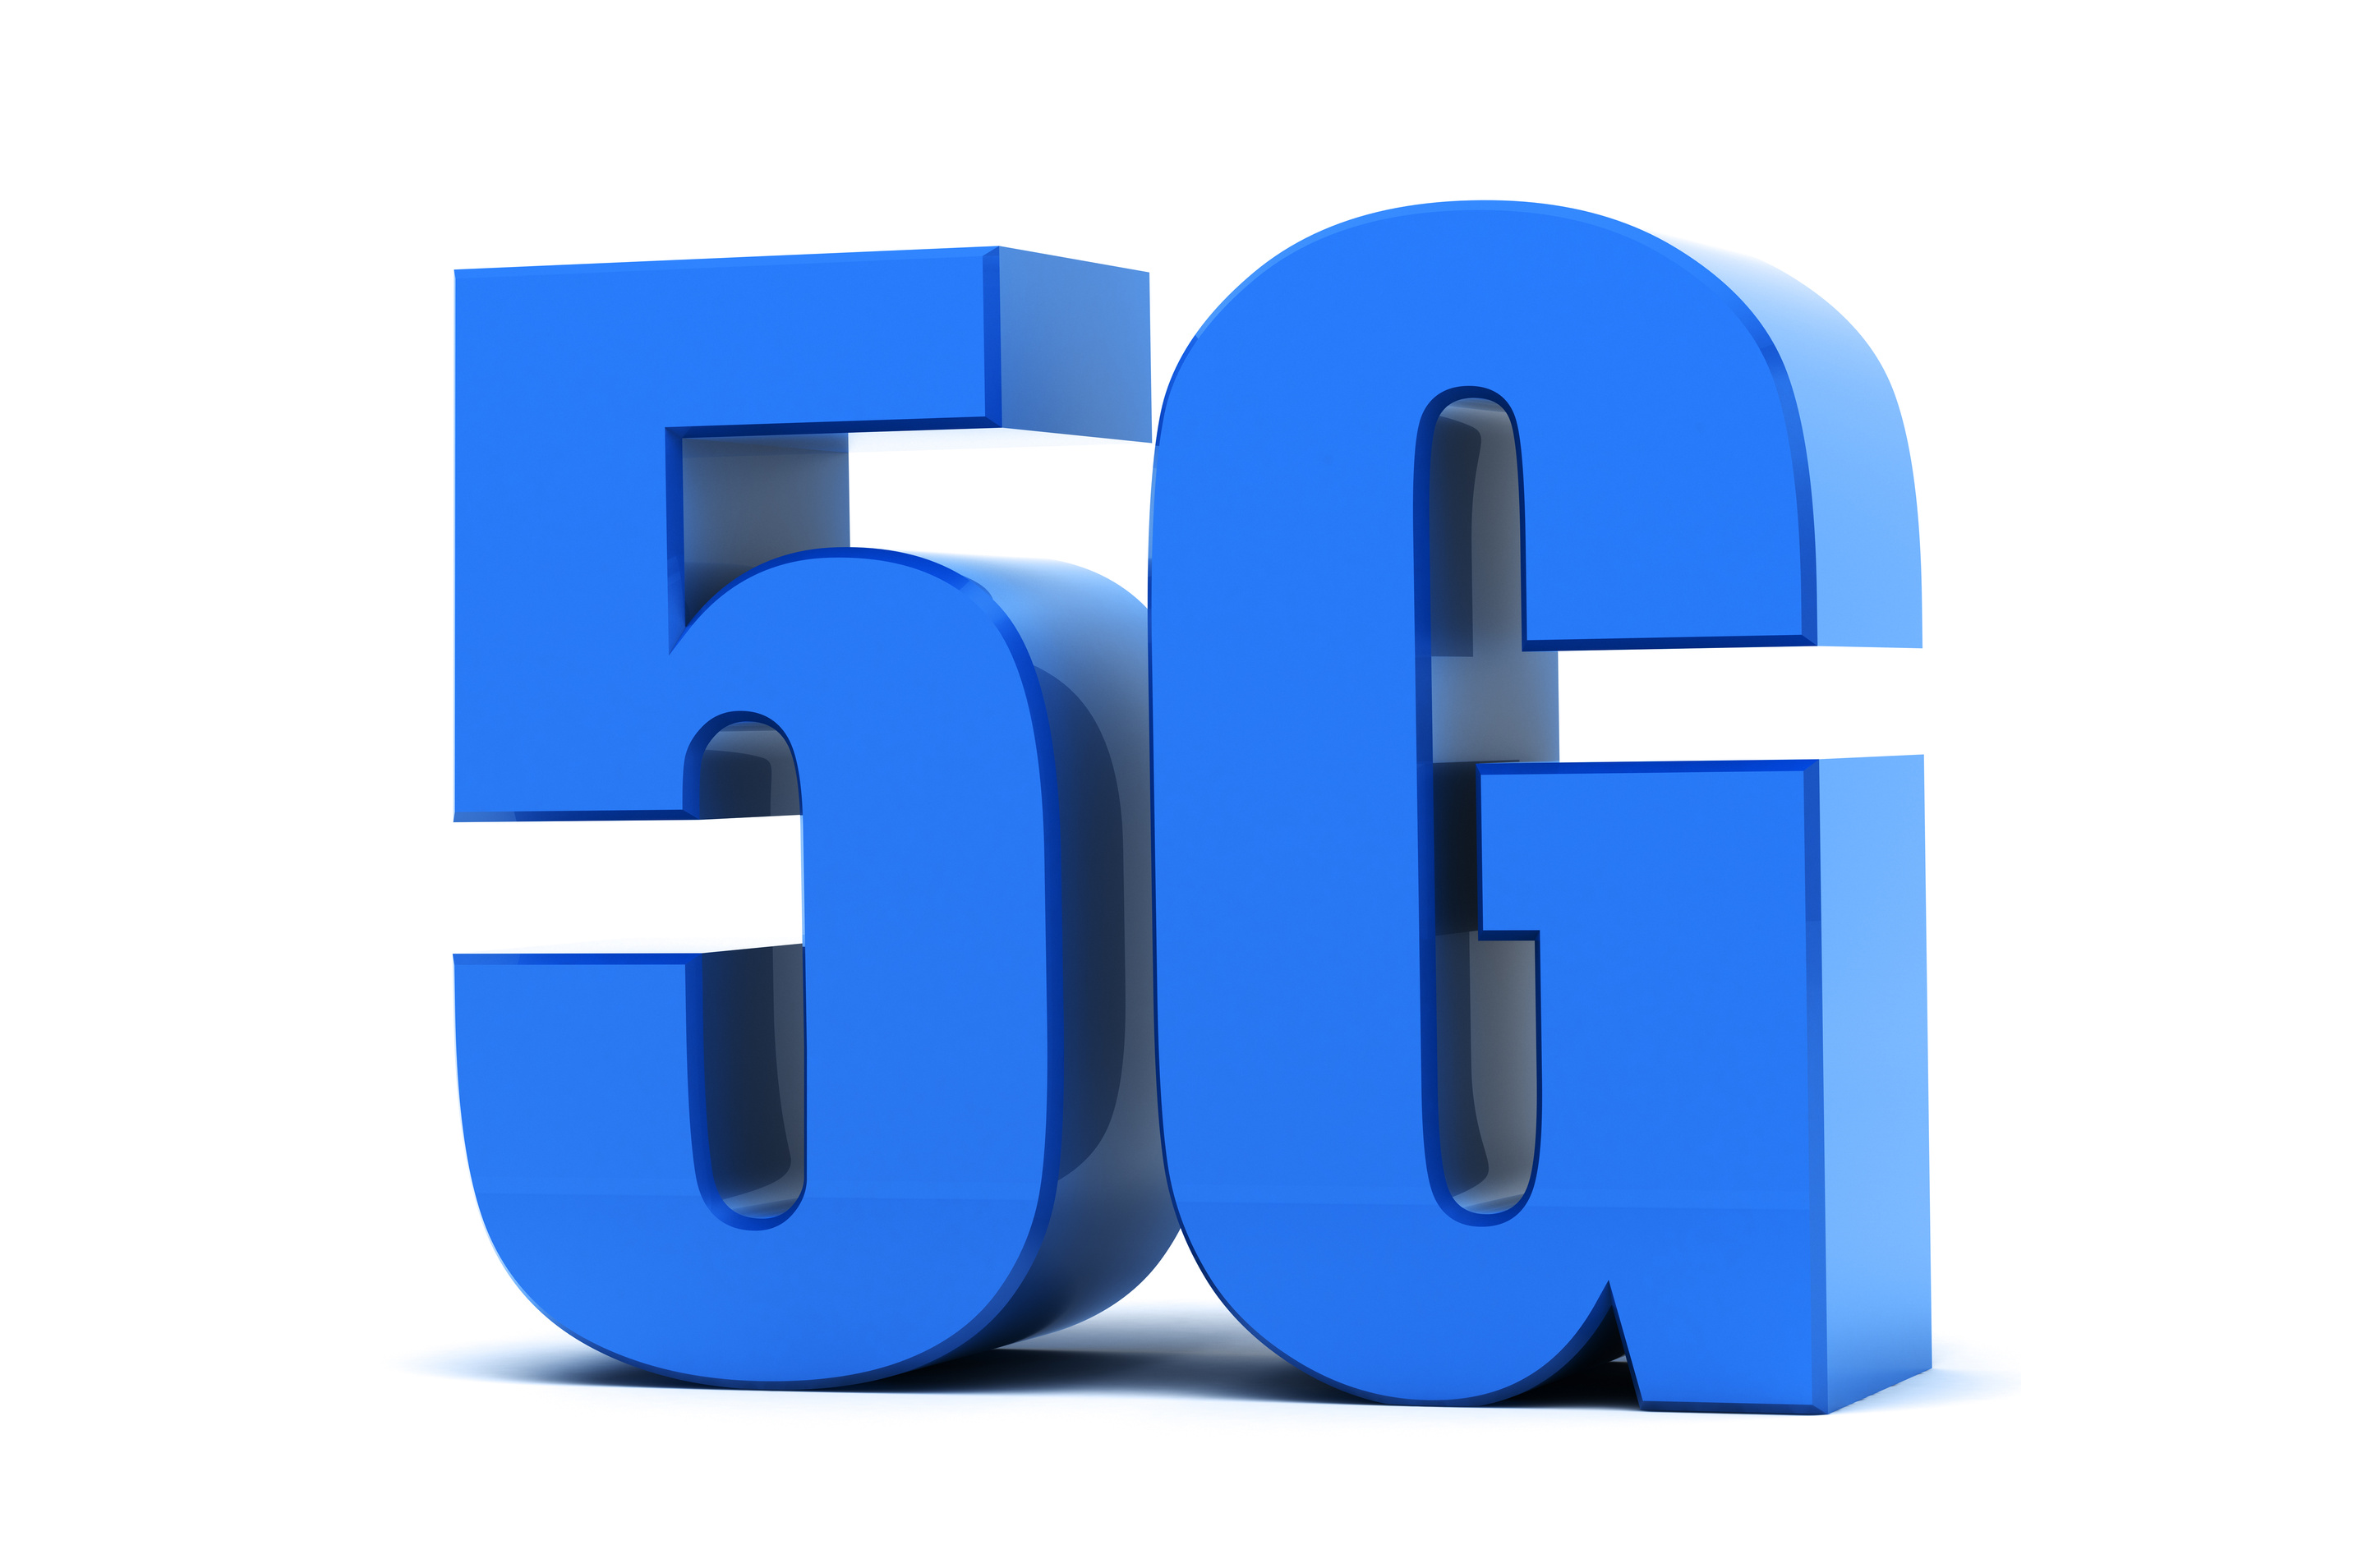 5g.png - MVNO MVNE MNO Mobile & Telecoms industry intelligence